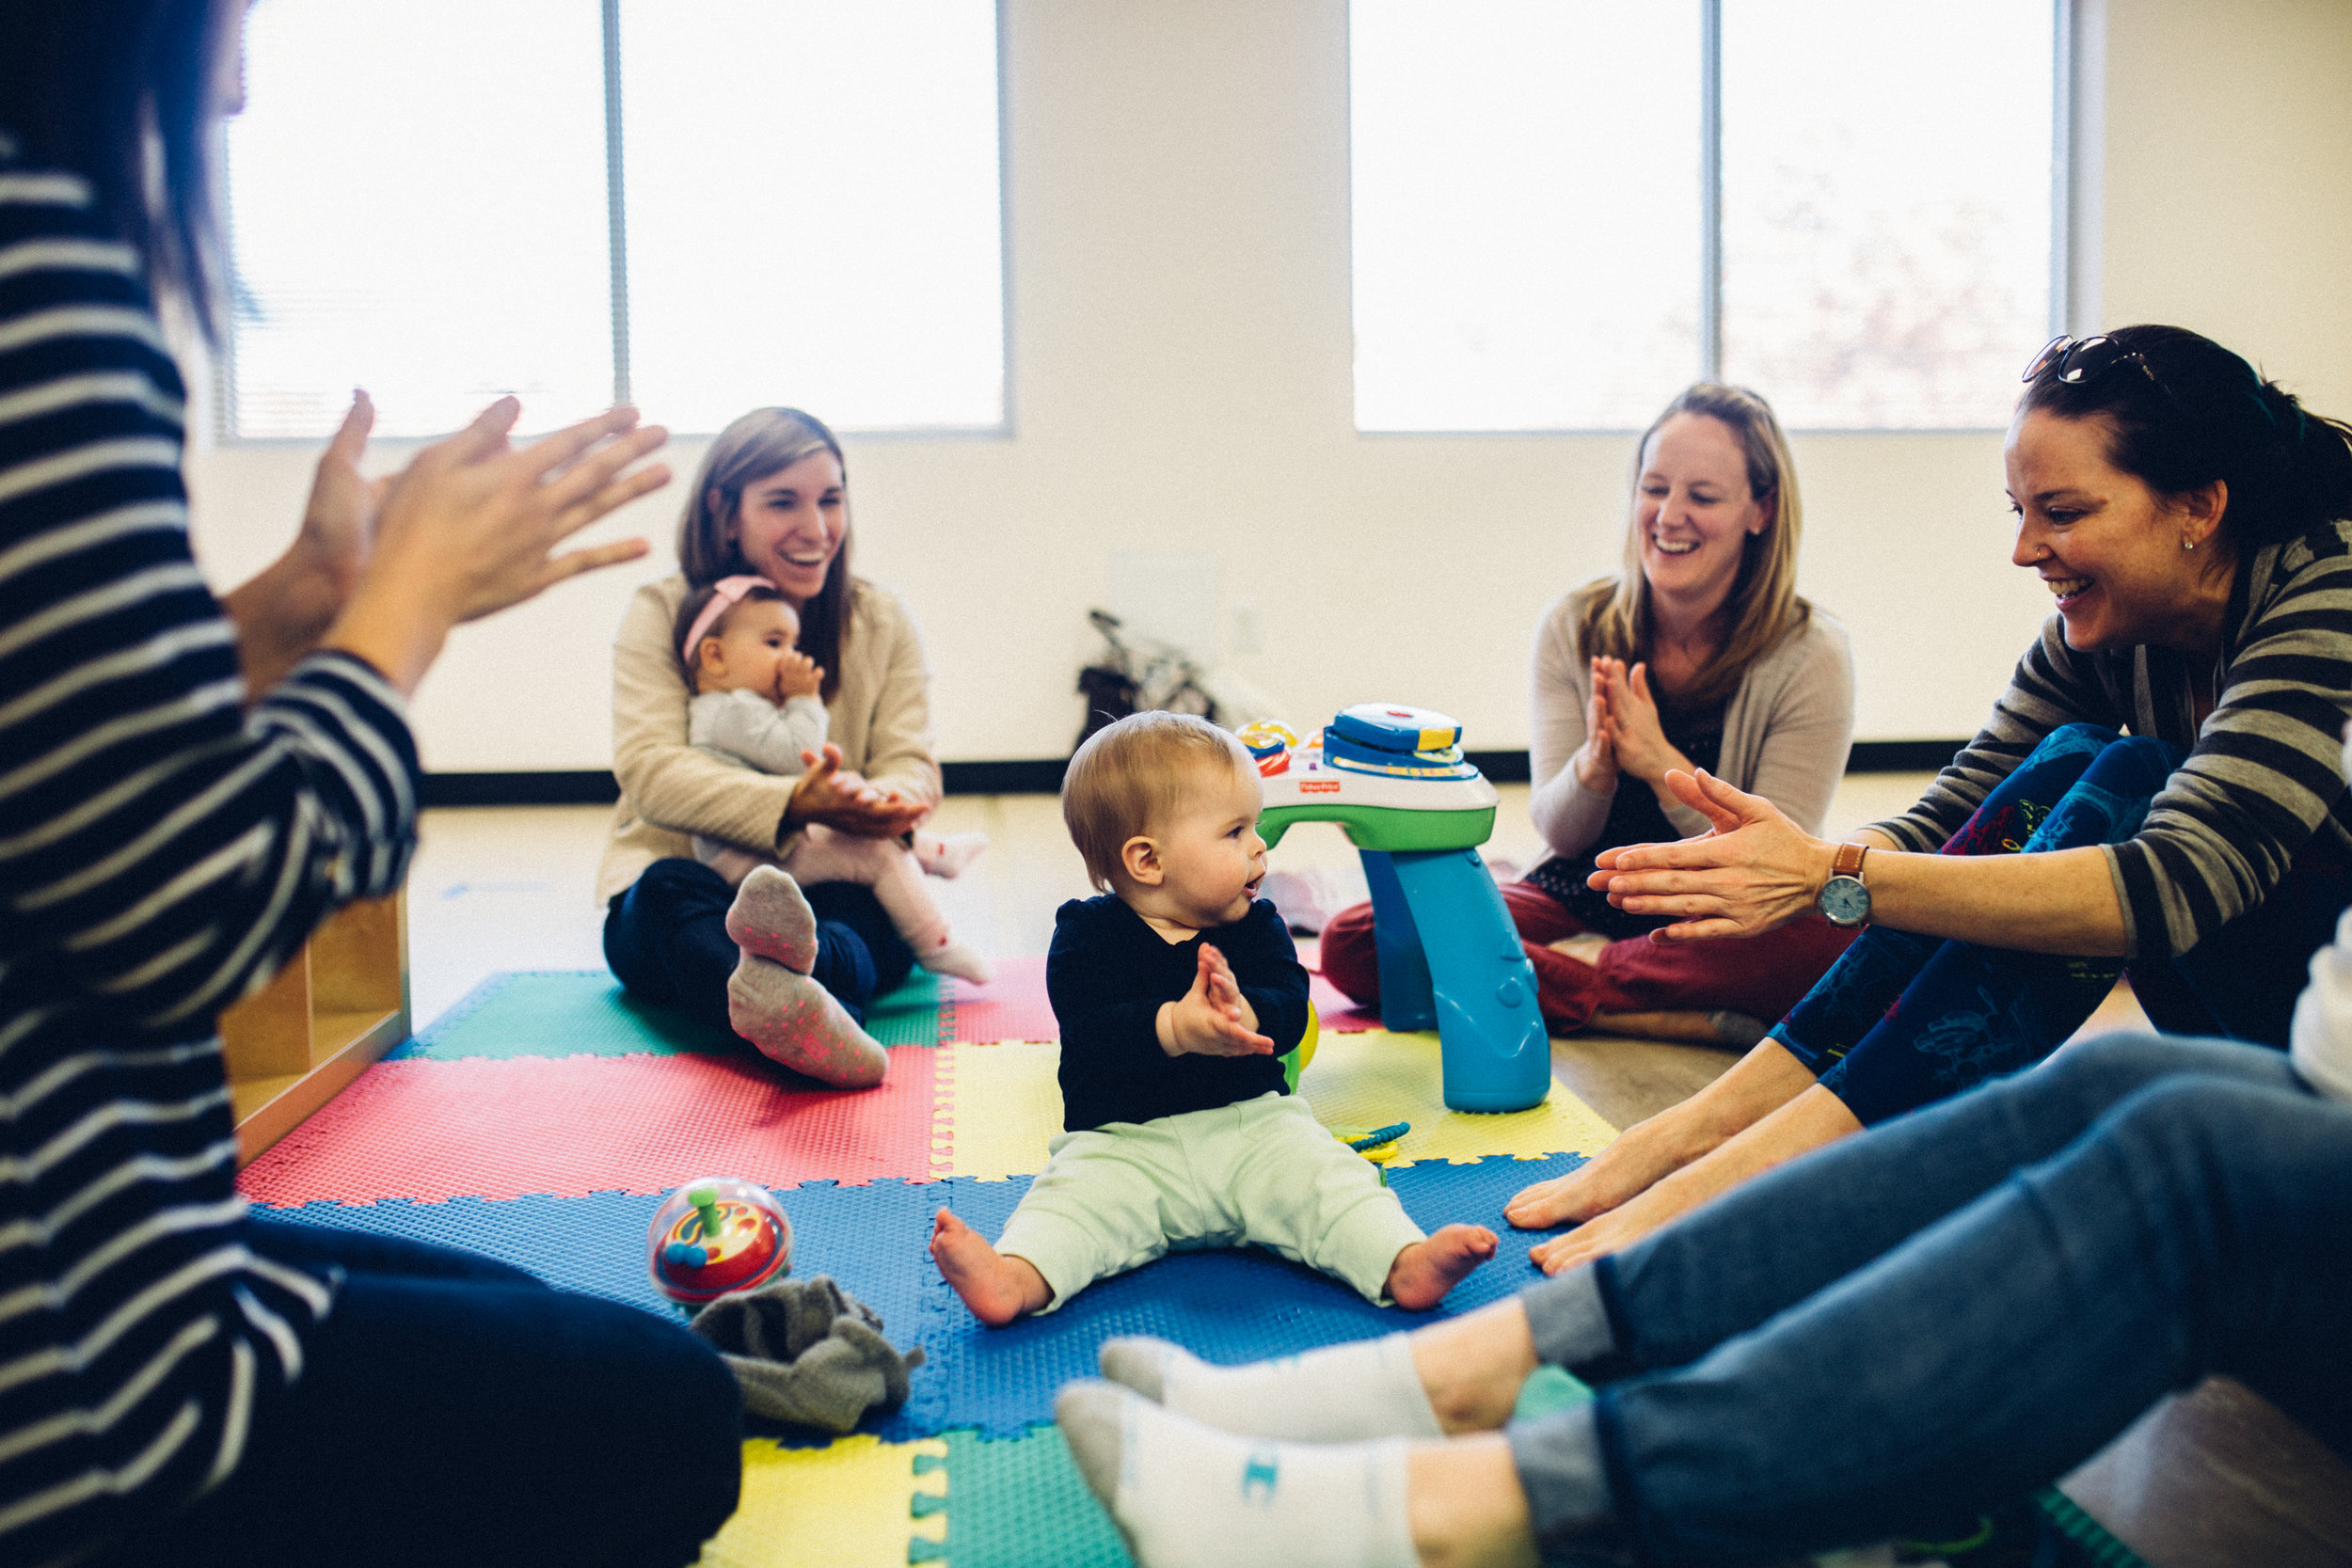 Activities for babies in the triangle area of North Carolina